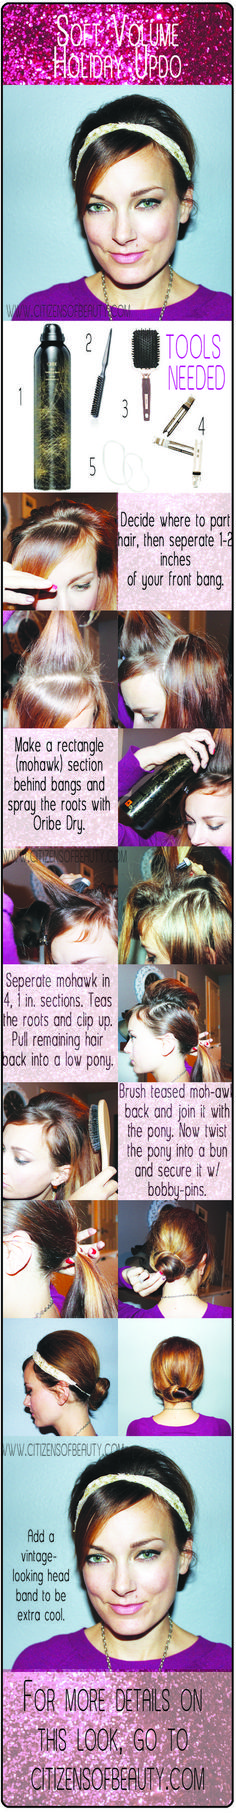 Soft Volume Holiday Updo with Kelly Peach and Oribe Hair Use Oribe Dry and this guide to get a soft, Holiday Hairstyles, Trendy Hairstyles, Volume Updo, Hair Growth Stages, Grey Eyeshadow, Simple Bridesmaid Hair, Mane Event, Hair Hacks, Hair Tips